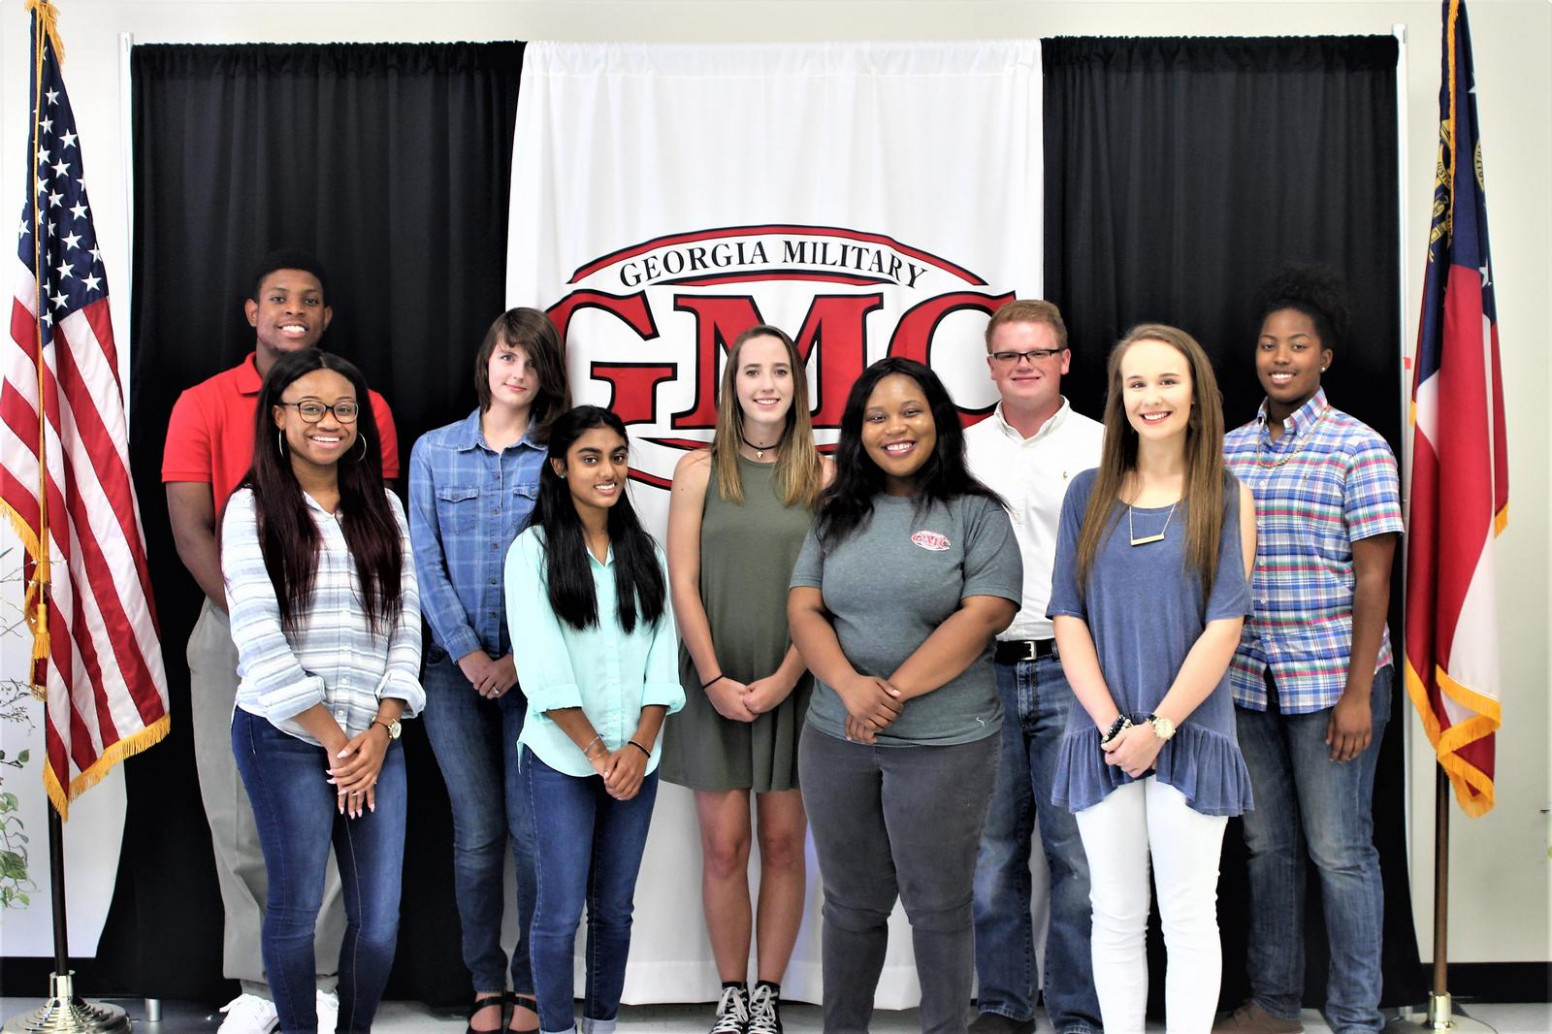 GMC - News - Georgia Military College - gmc valdosta graduation 2020